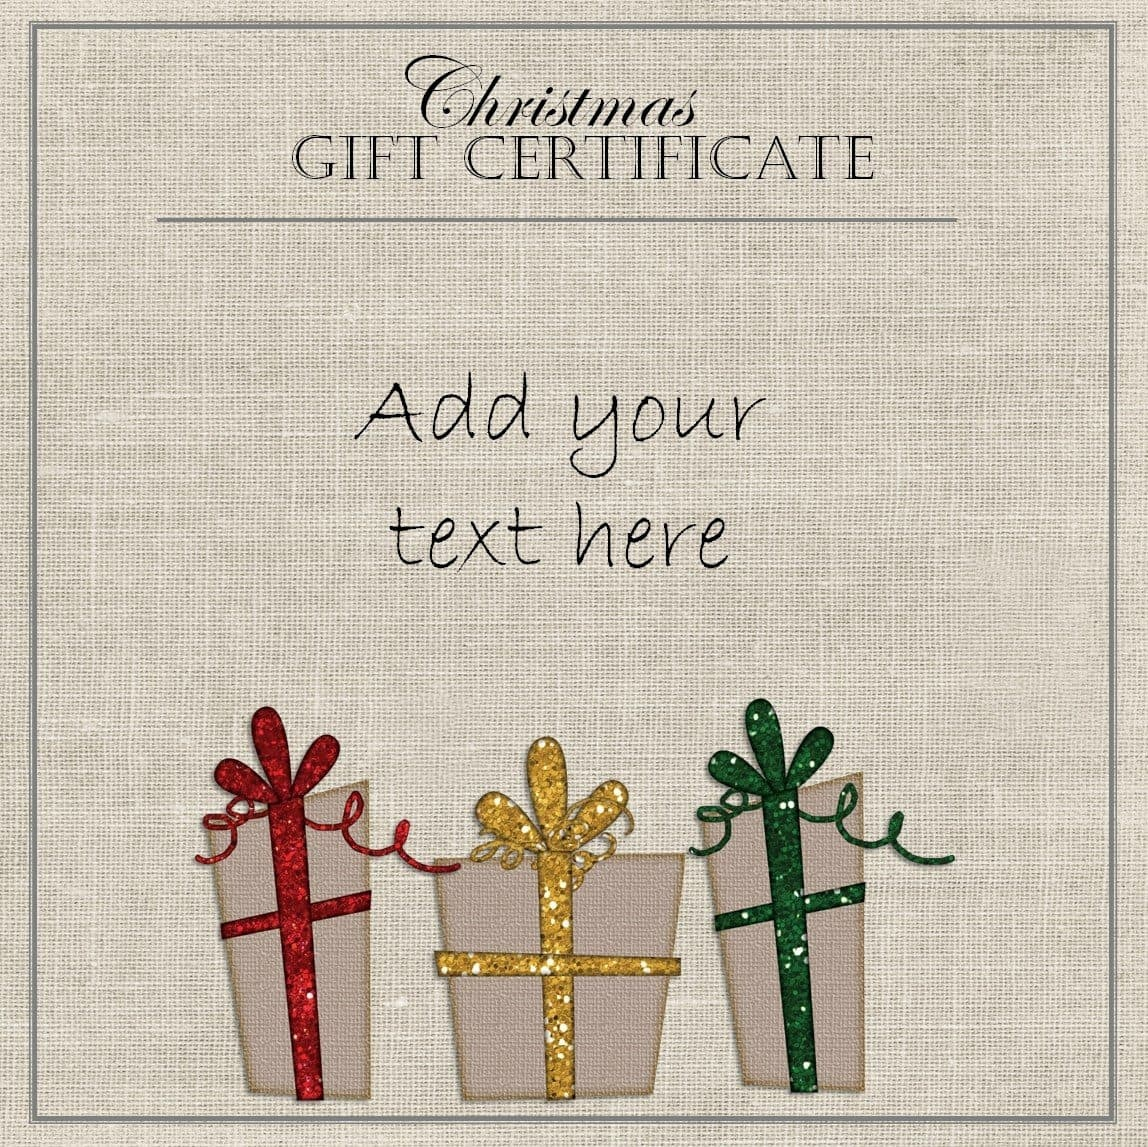 Free Christmas Gift Certificate Template | Customize Online & Download - Free Printable Xmas Gift Certificates